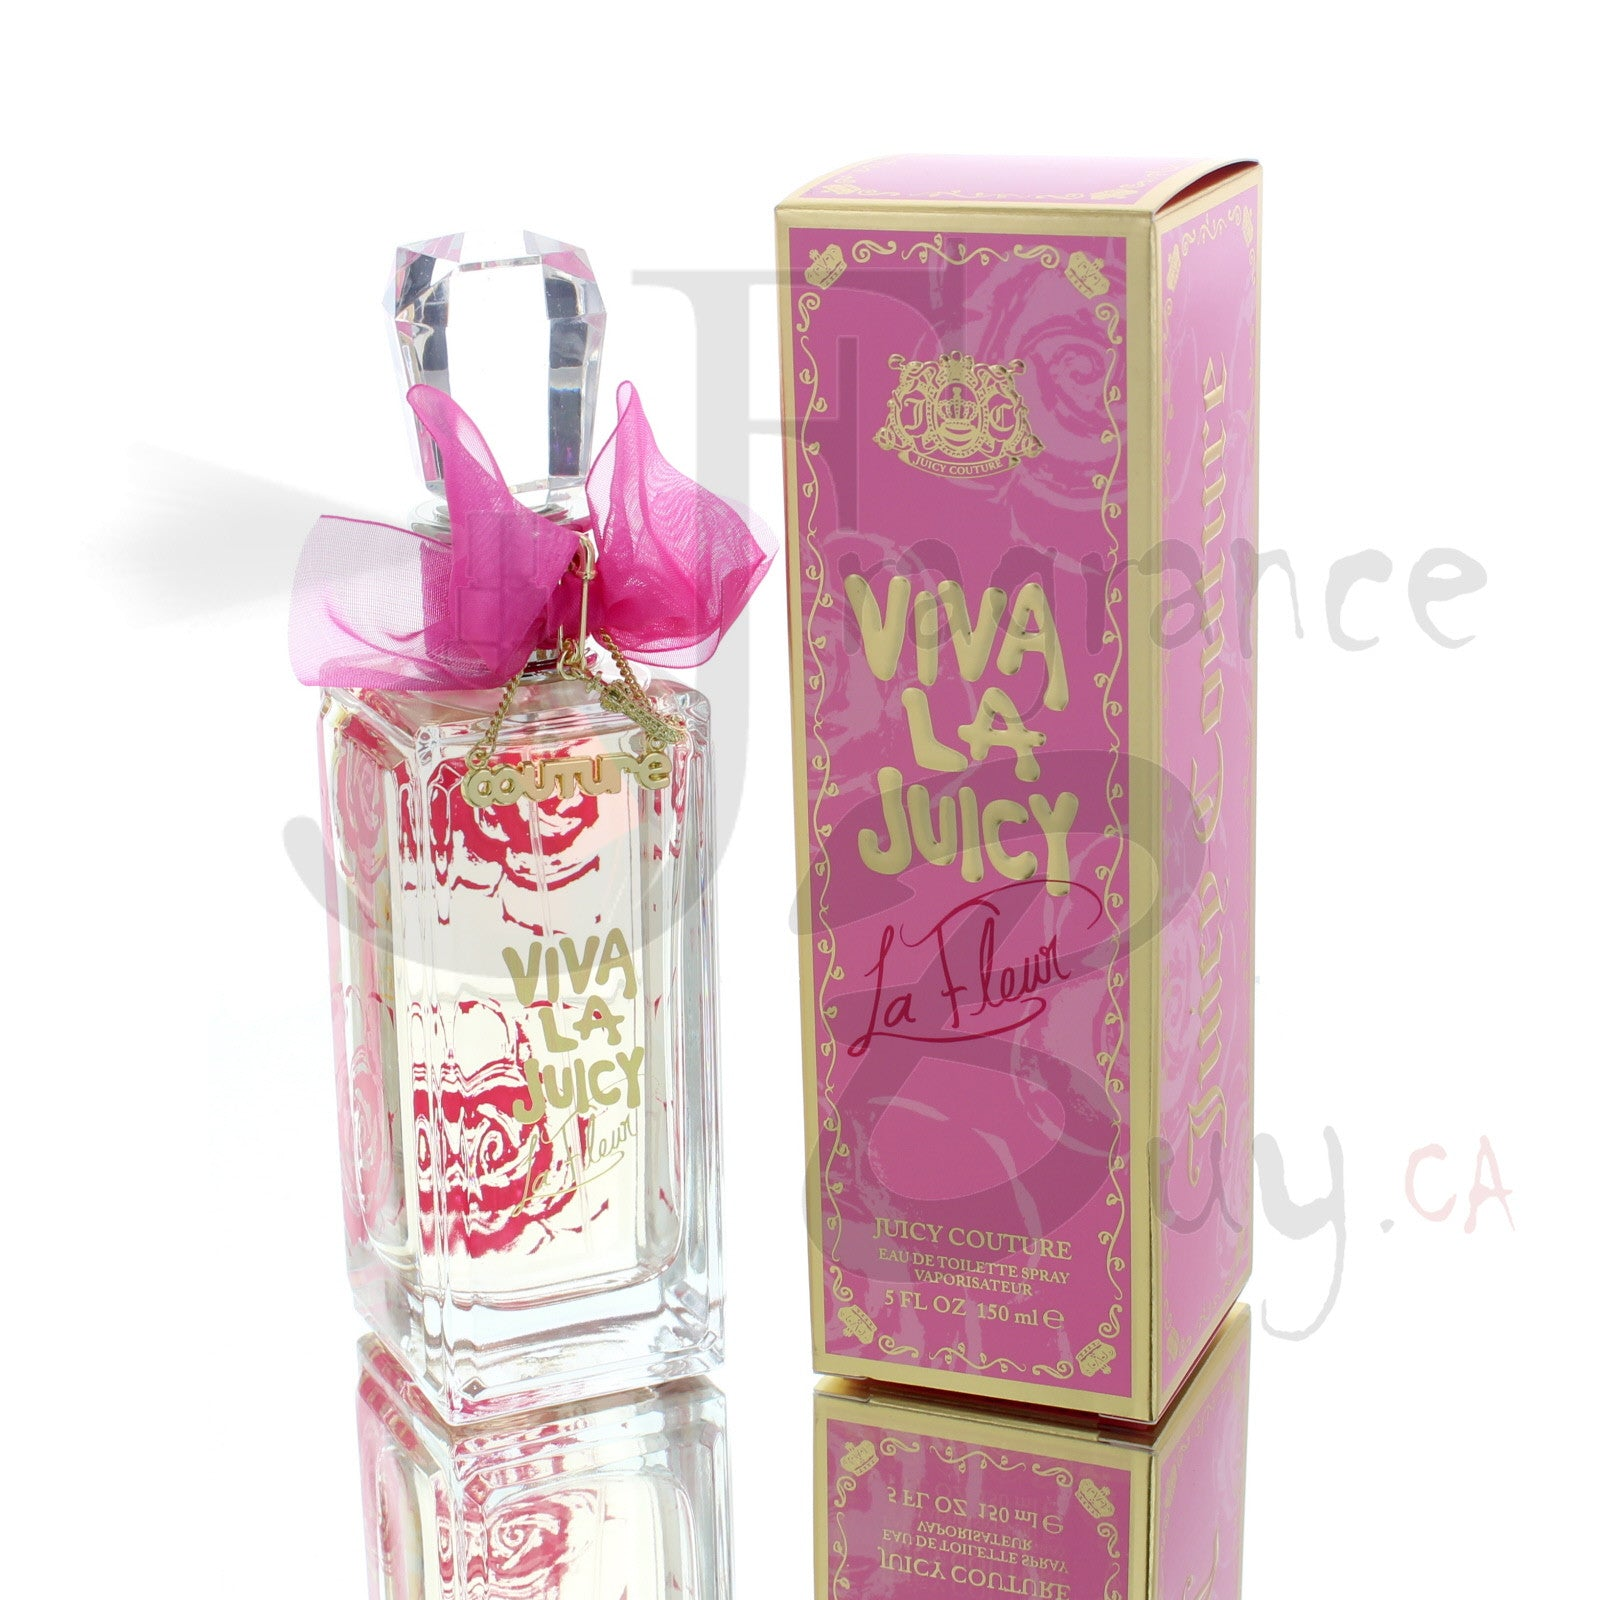 Juicy Couture Viva La Juicy la Fleur For Woman